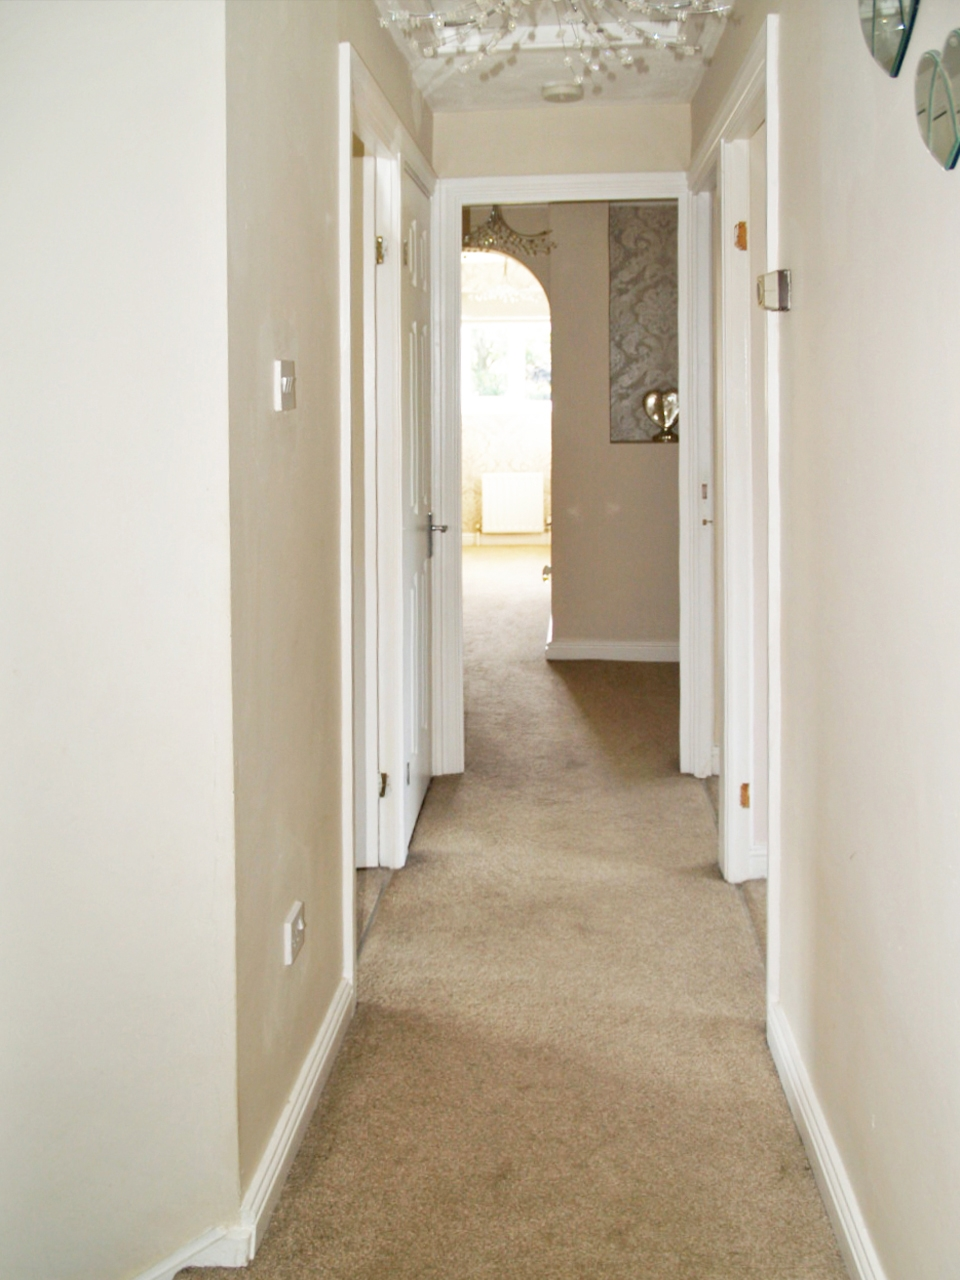 5 bedroom detached house SSTC in Solihull - photograph 9.